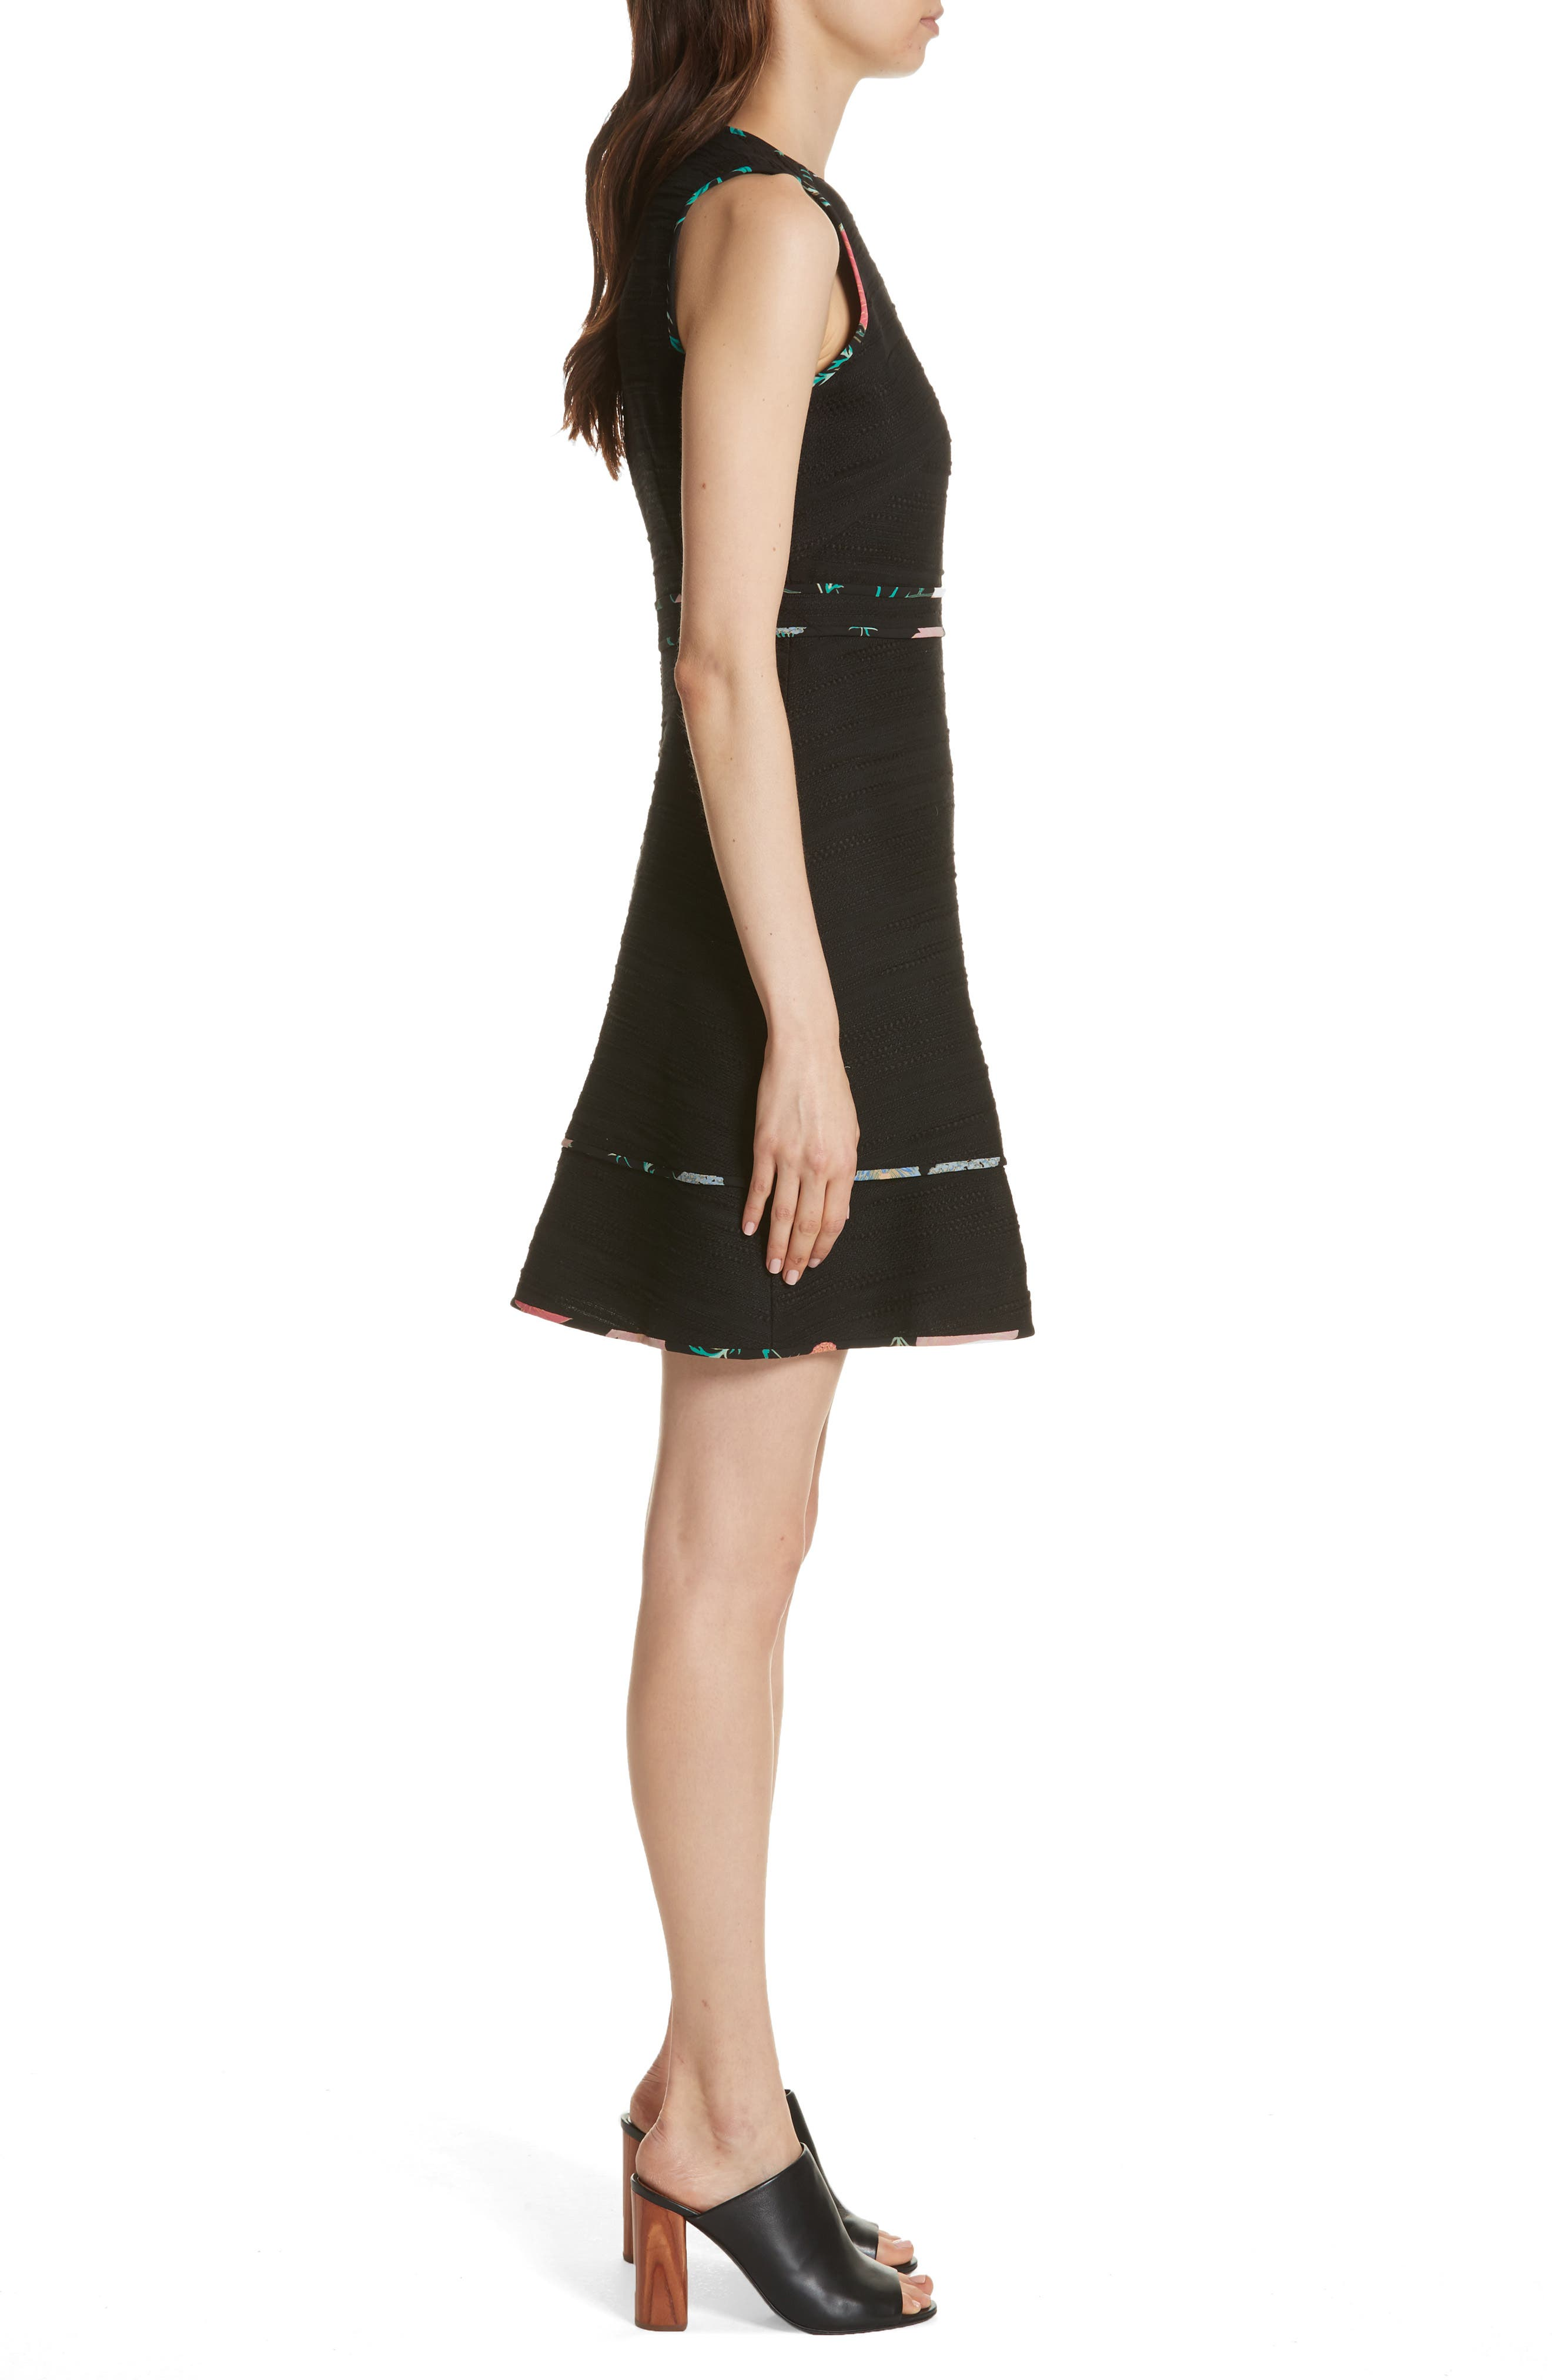 blossom trim tweed dress,                             Alternate thumbnail 3, color,                             Black